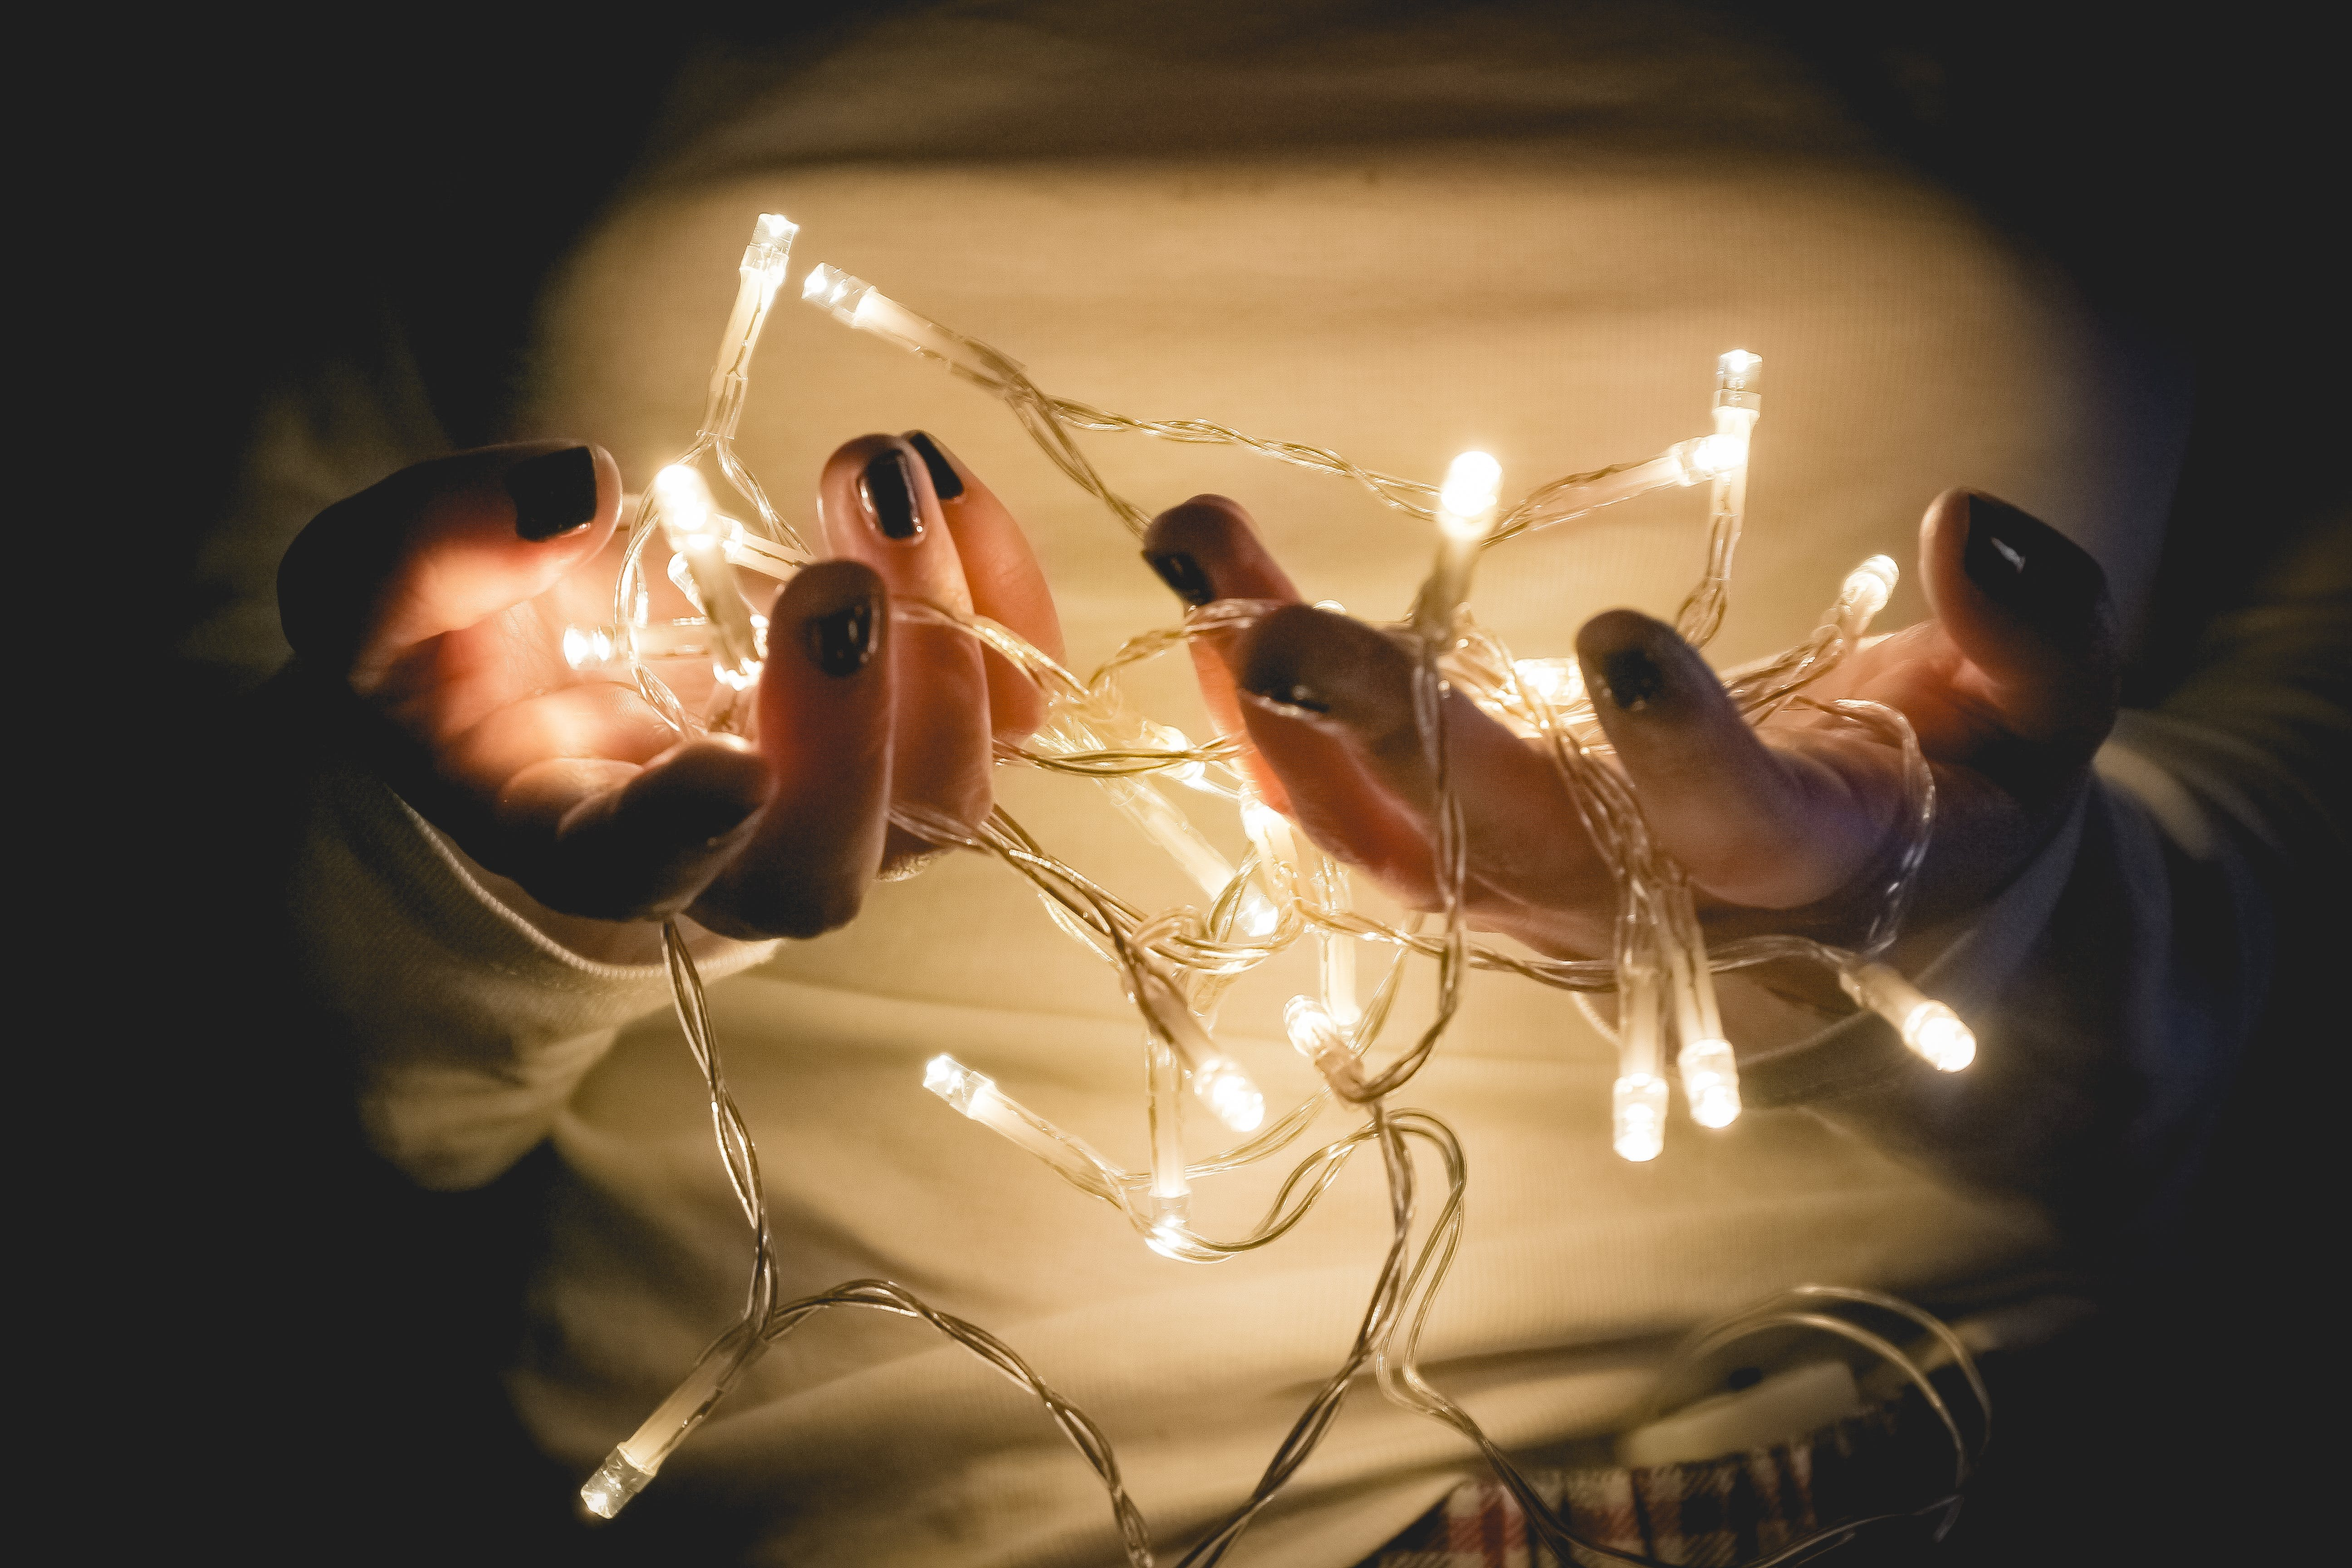 Closeup Photo of Person Wearing White Long-sleeved Shirt Holding Turned on String Lights